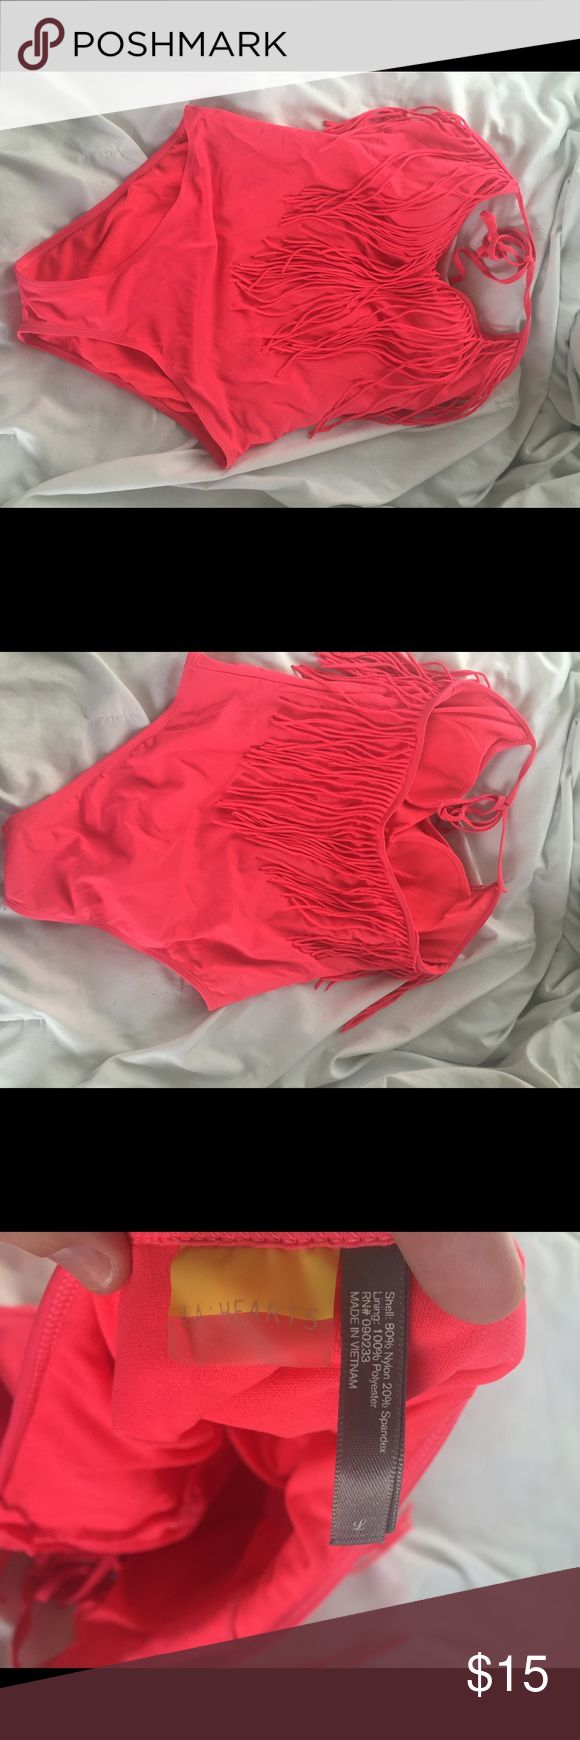 la hearts fringe bathing suit super cute! only worn a few times!! fringe goes front to back and is a halter tie top! bright coral color. LA Hearts Swim One Pieces